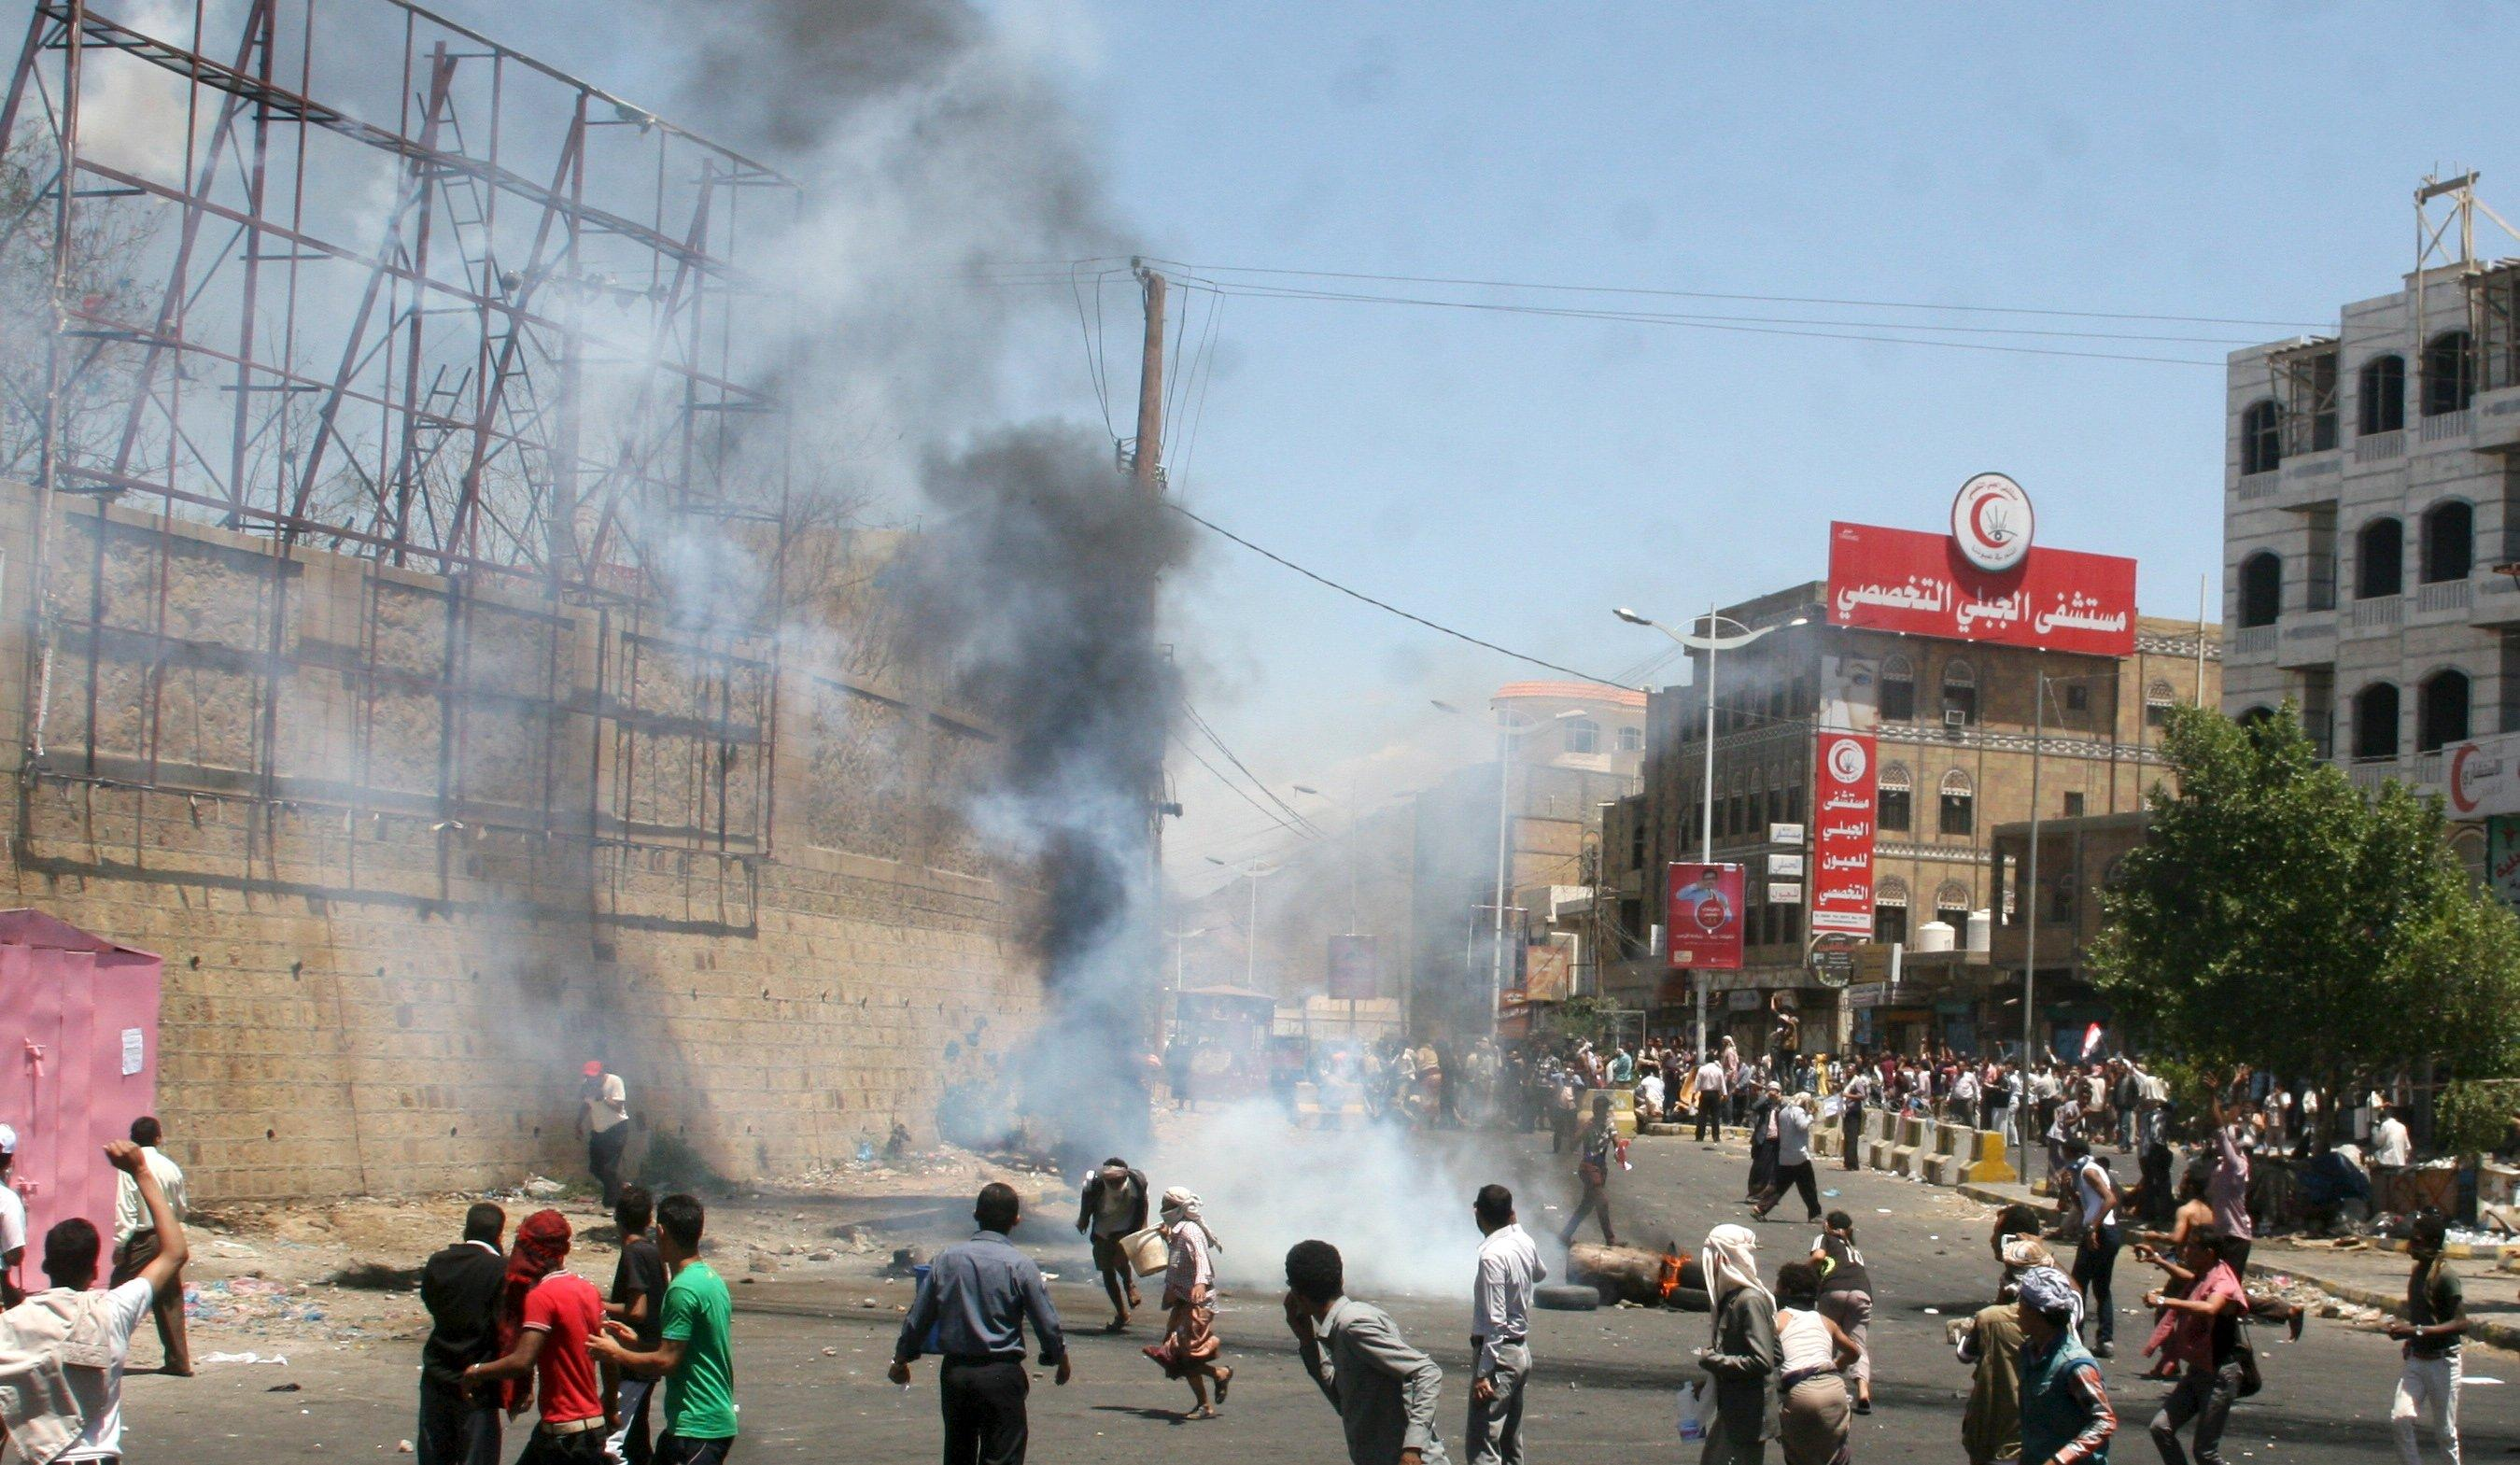 Anti-Houthi protesters demonstrate in Yemen's southwestern city of Taiz March 22, 2015. Houthi fighters opposed to Yemen's president took over the central city of Taiz in an escalation of a power struggle diplomats say risks drawing in neighboring oil giant Saudi Arabia and its main regional rival Iran. Residents of Taiz, on a main road from the capital Sanaa to the country's second city of Aden, said that Houthi militias took over the city's military airport without a struggle from local authorities late on Saturday. REUTERS/Anees Mahyoub